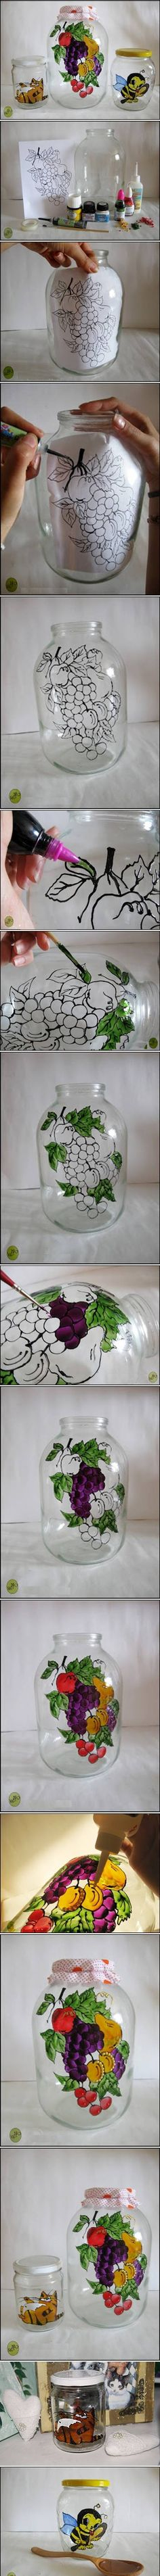 How to decorate your jars with paint